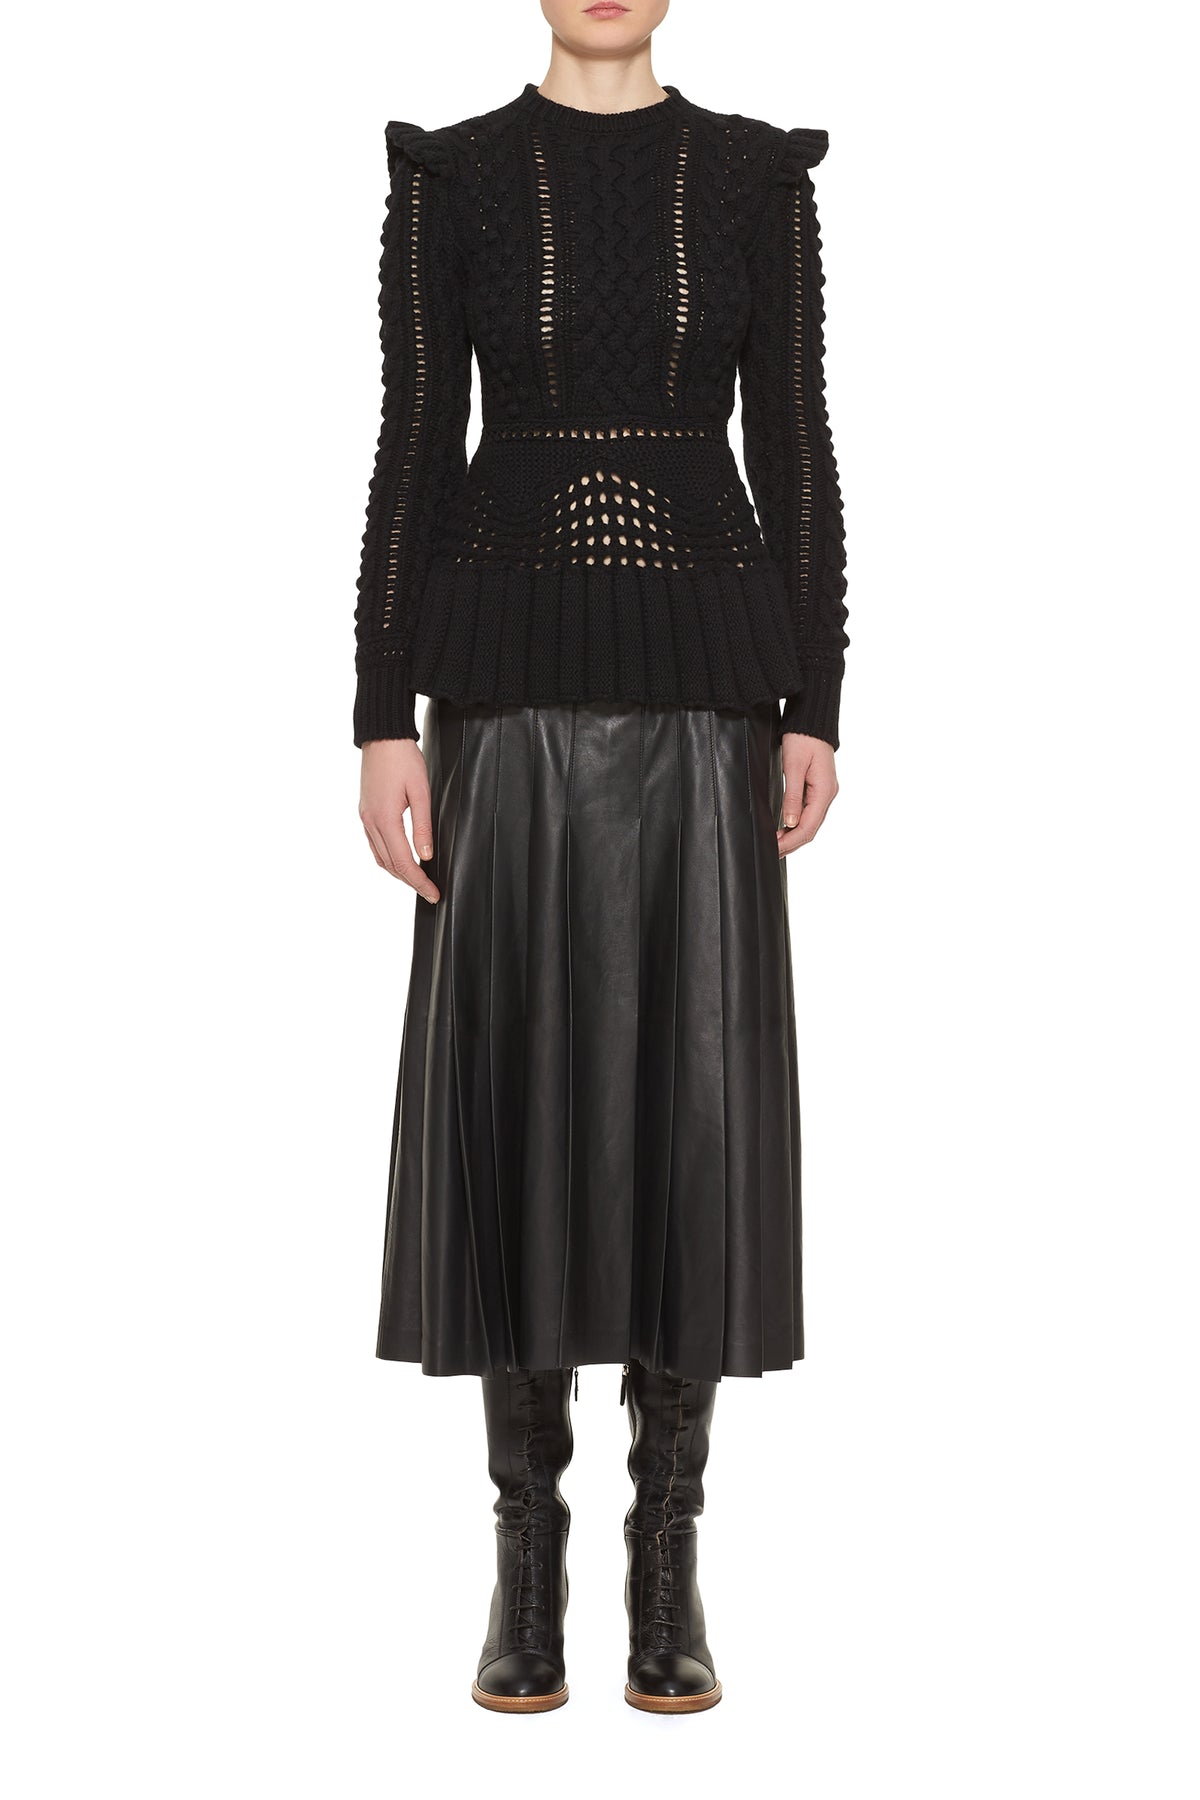 Elisa Knit Leather Dress